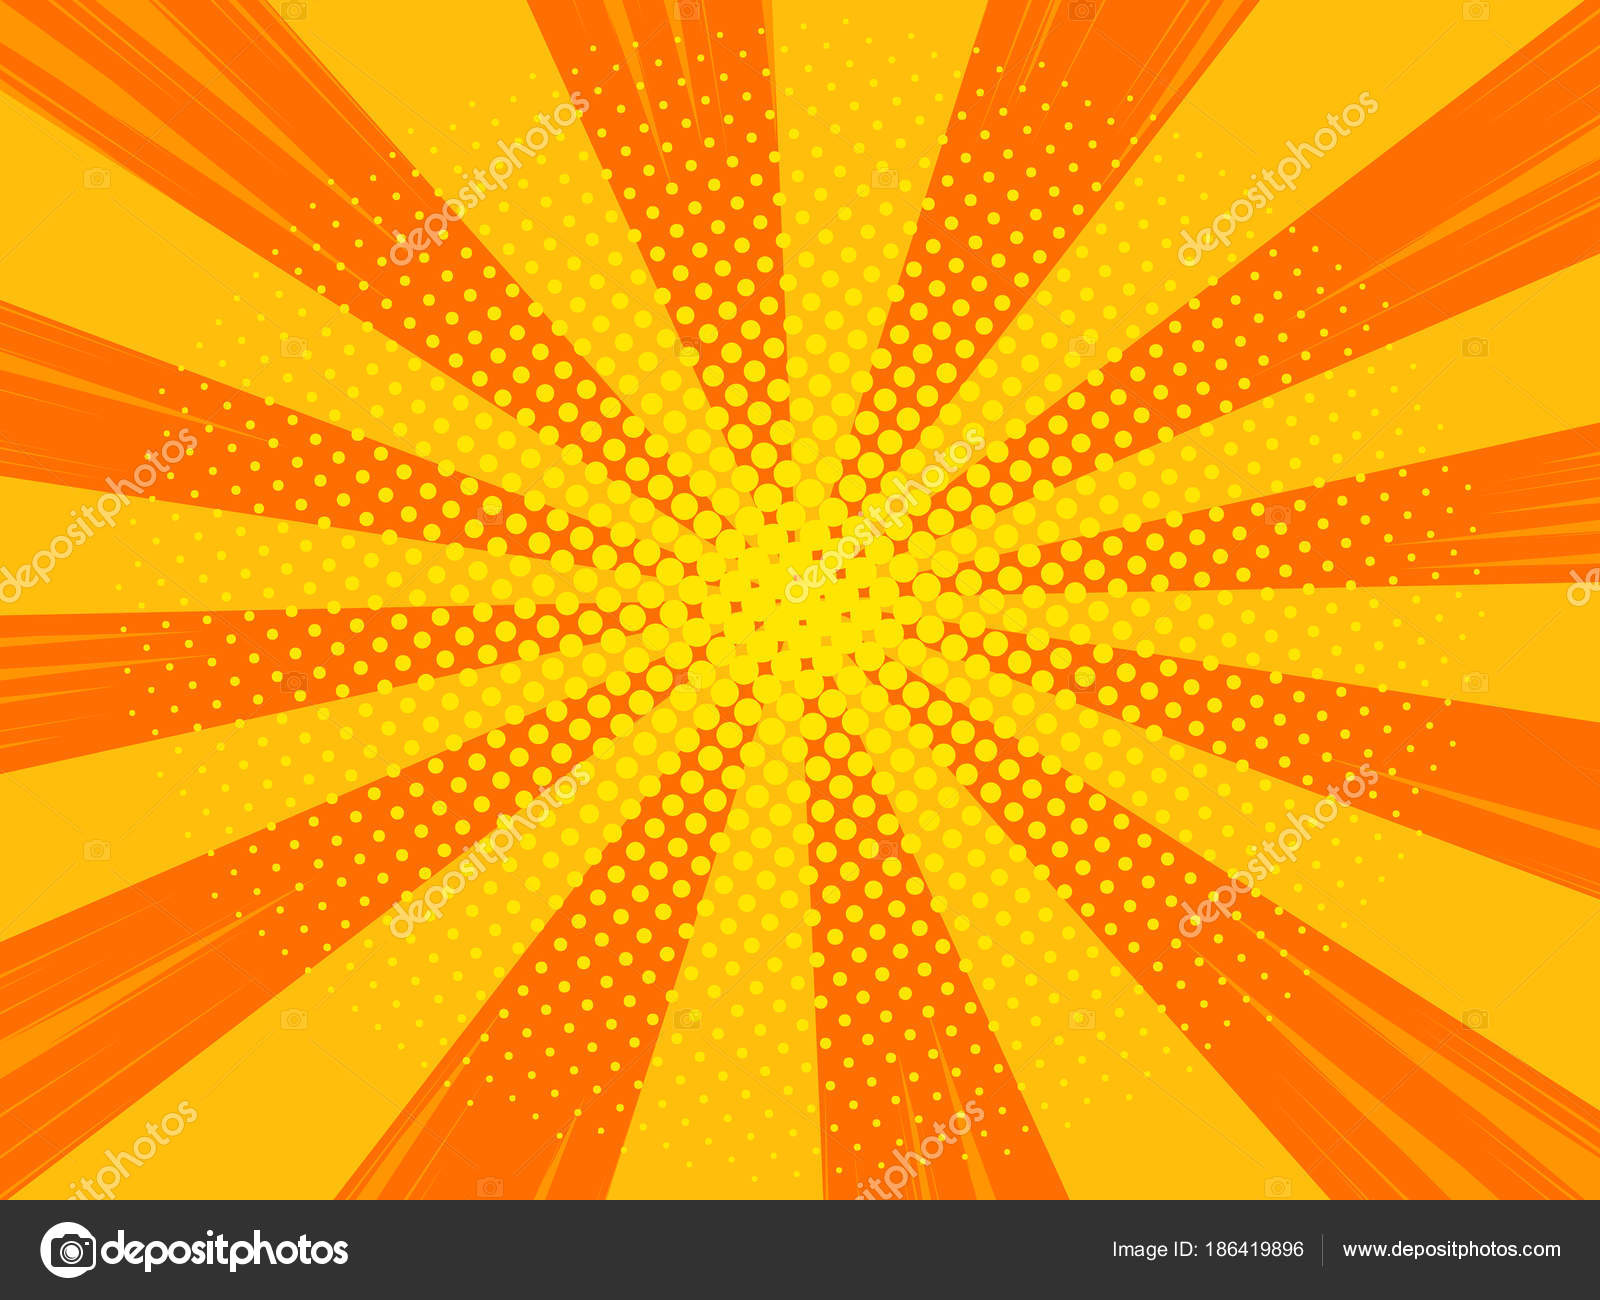 orange comic book poster background halftone pattern texture stock